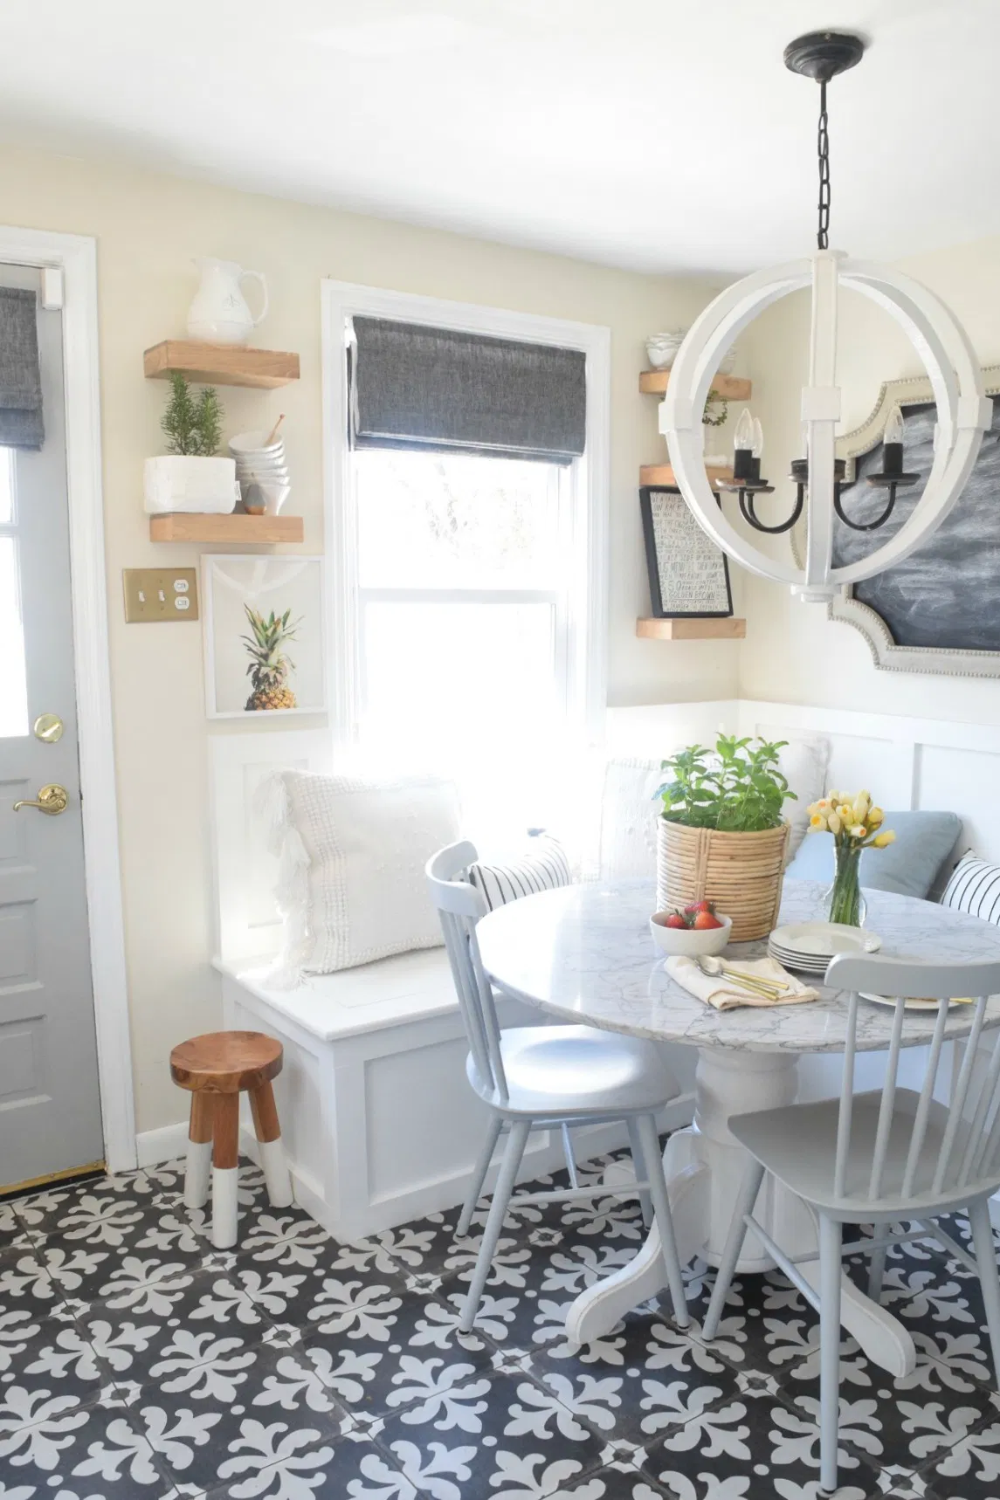 Built-in Kitchen Banquette Reveal